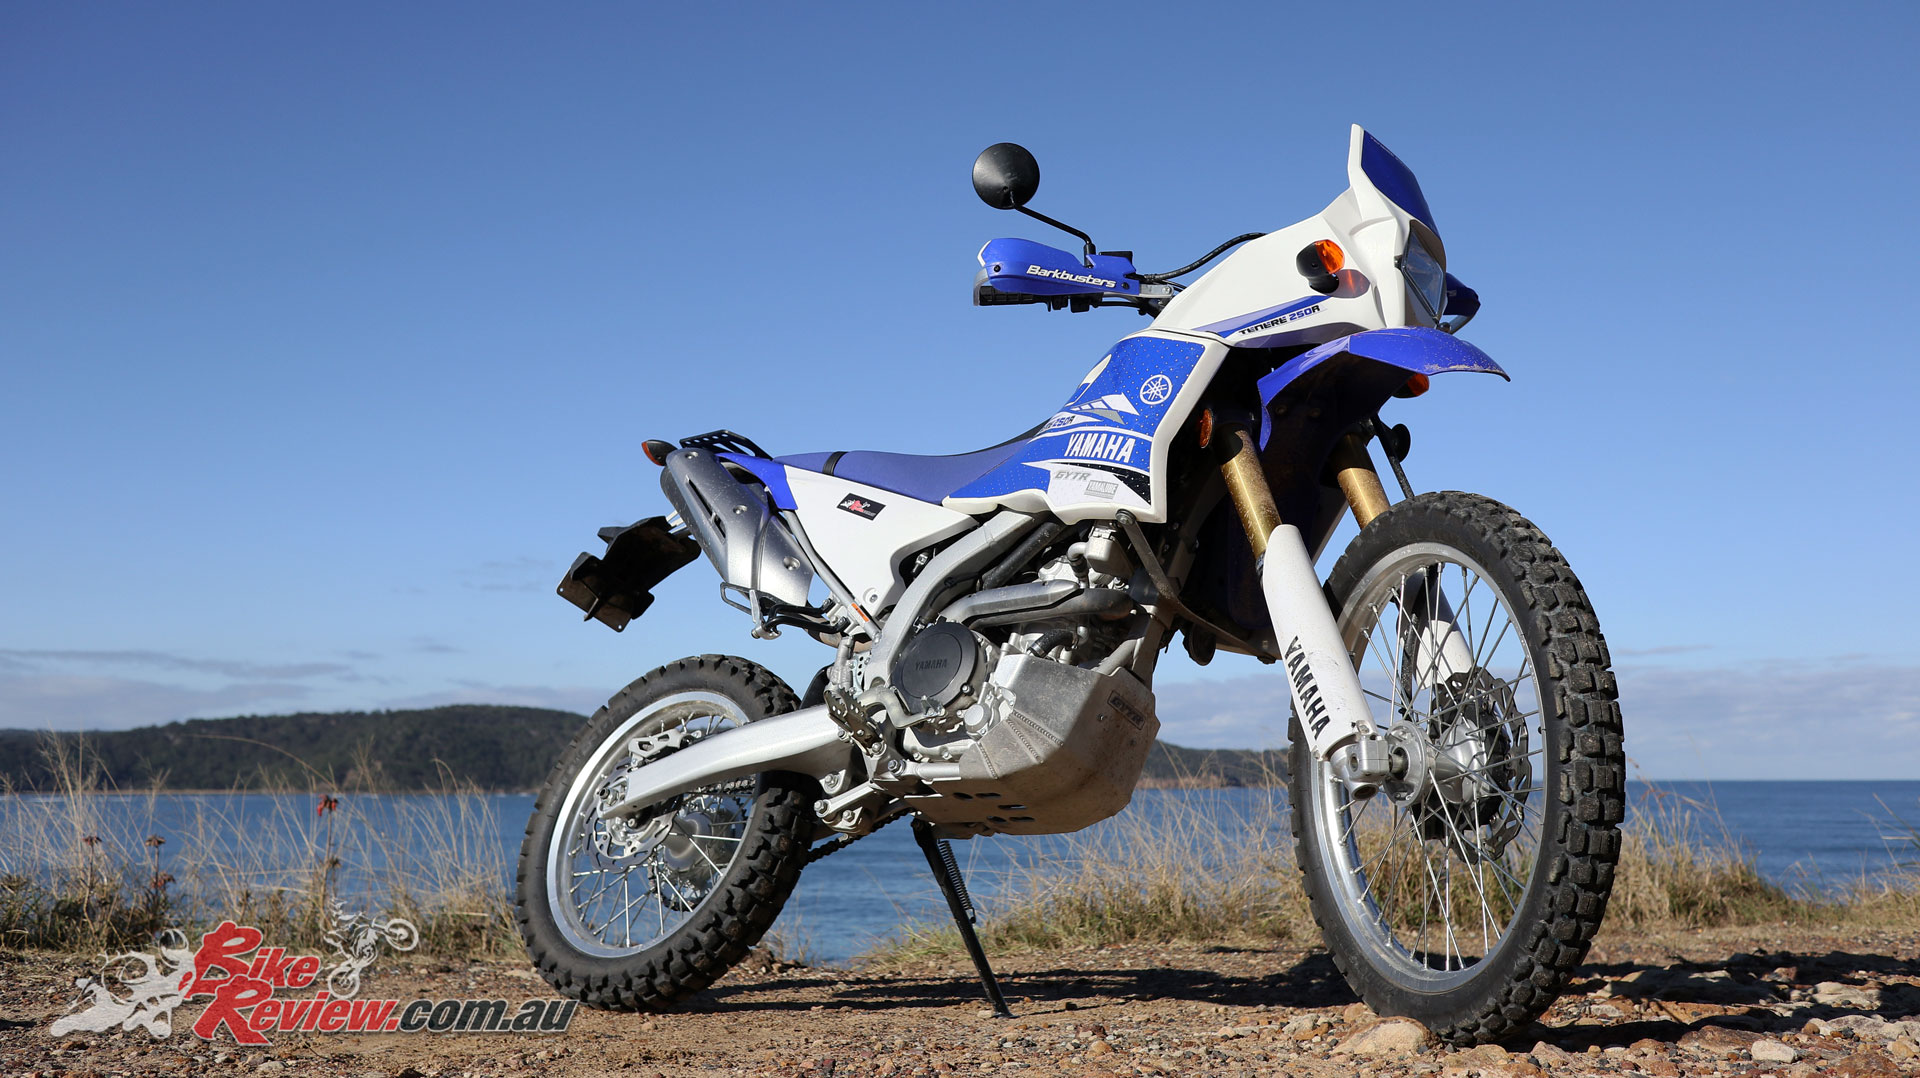 Project 2019 Yamaha WR250R joins the BikeReview.com.au stable